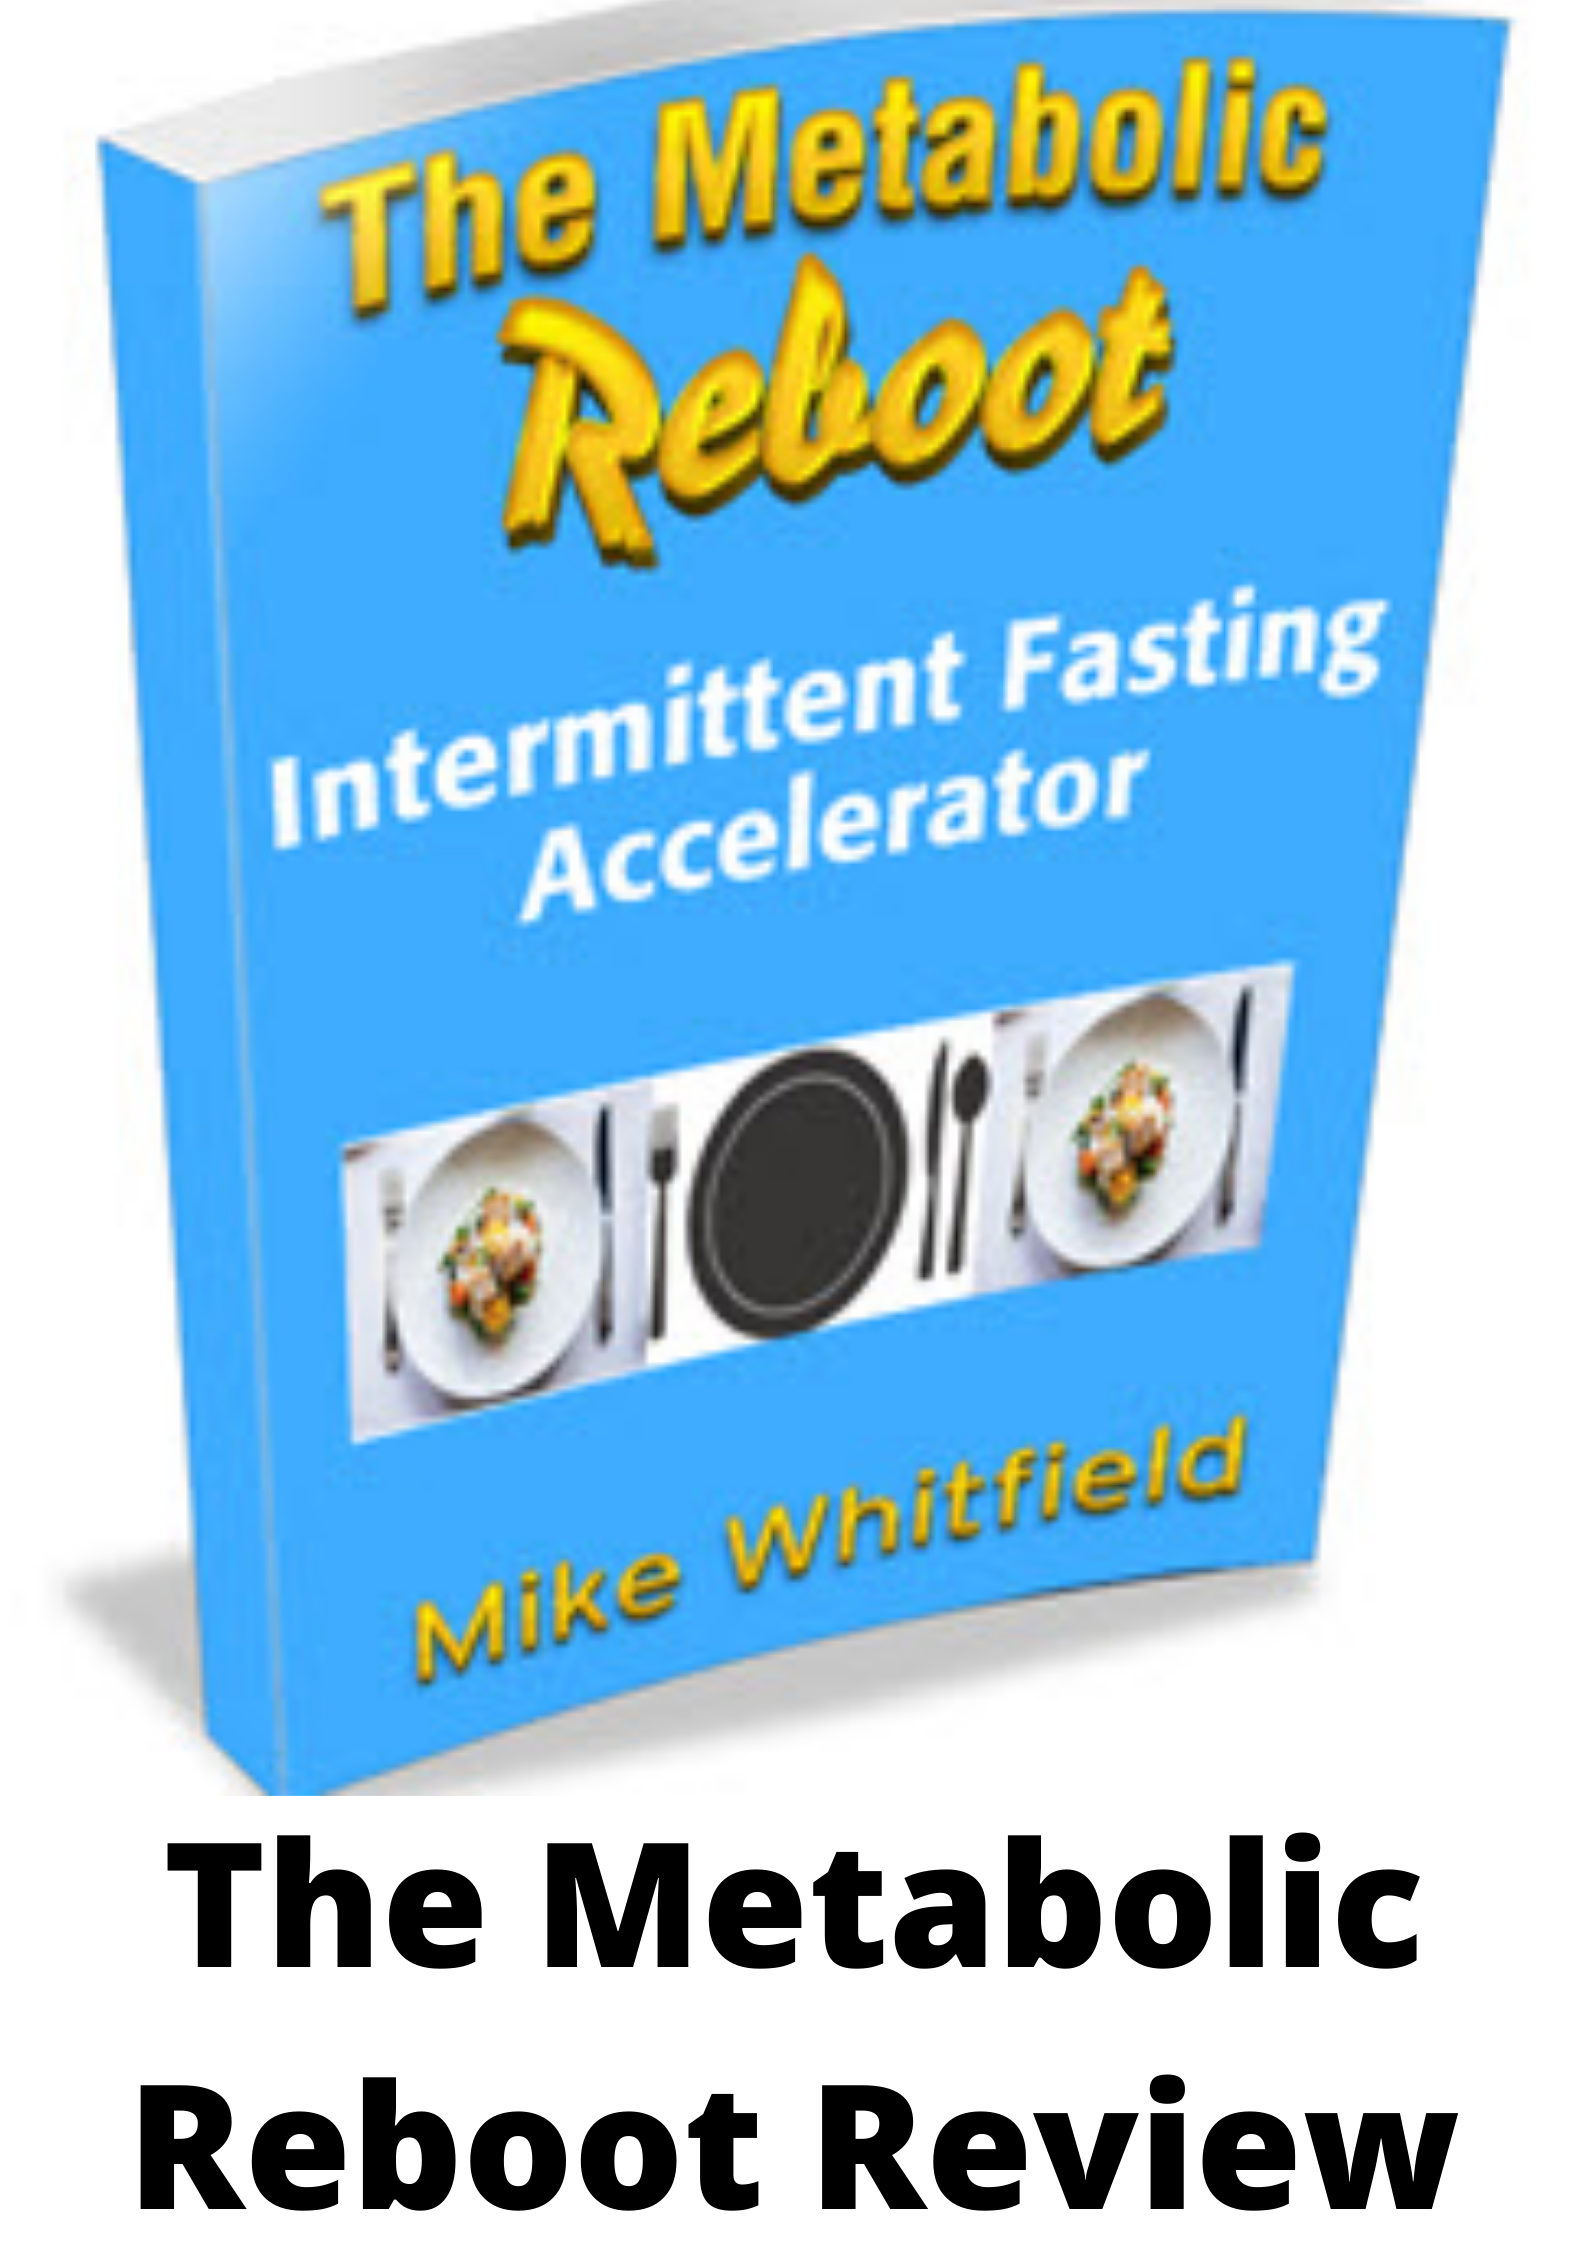 The Metabolic Reboot Review-A new way for fat burn?